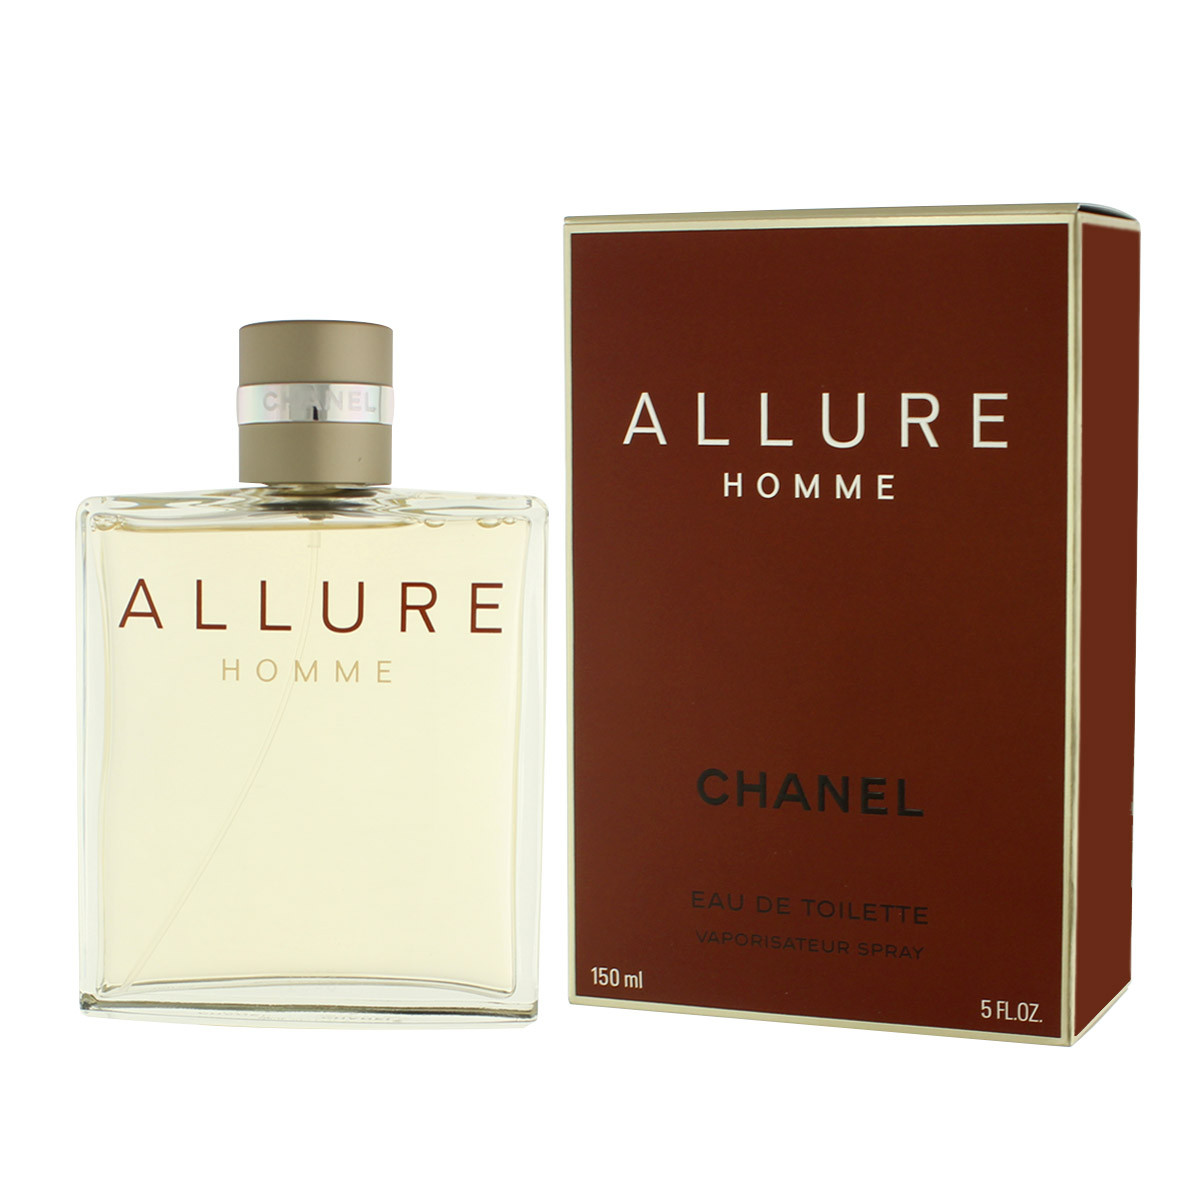 chanel allure homme eau de toilette 150 ml man allure. Black Bedroom Furniture Sets. Home Design Ideas